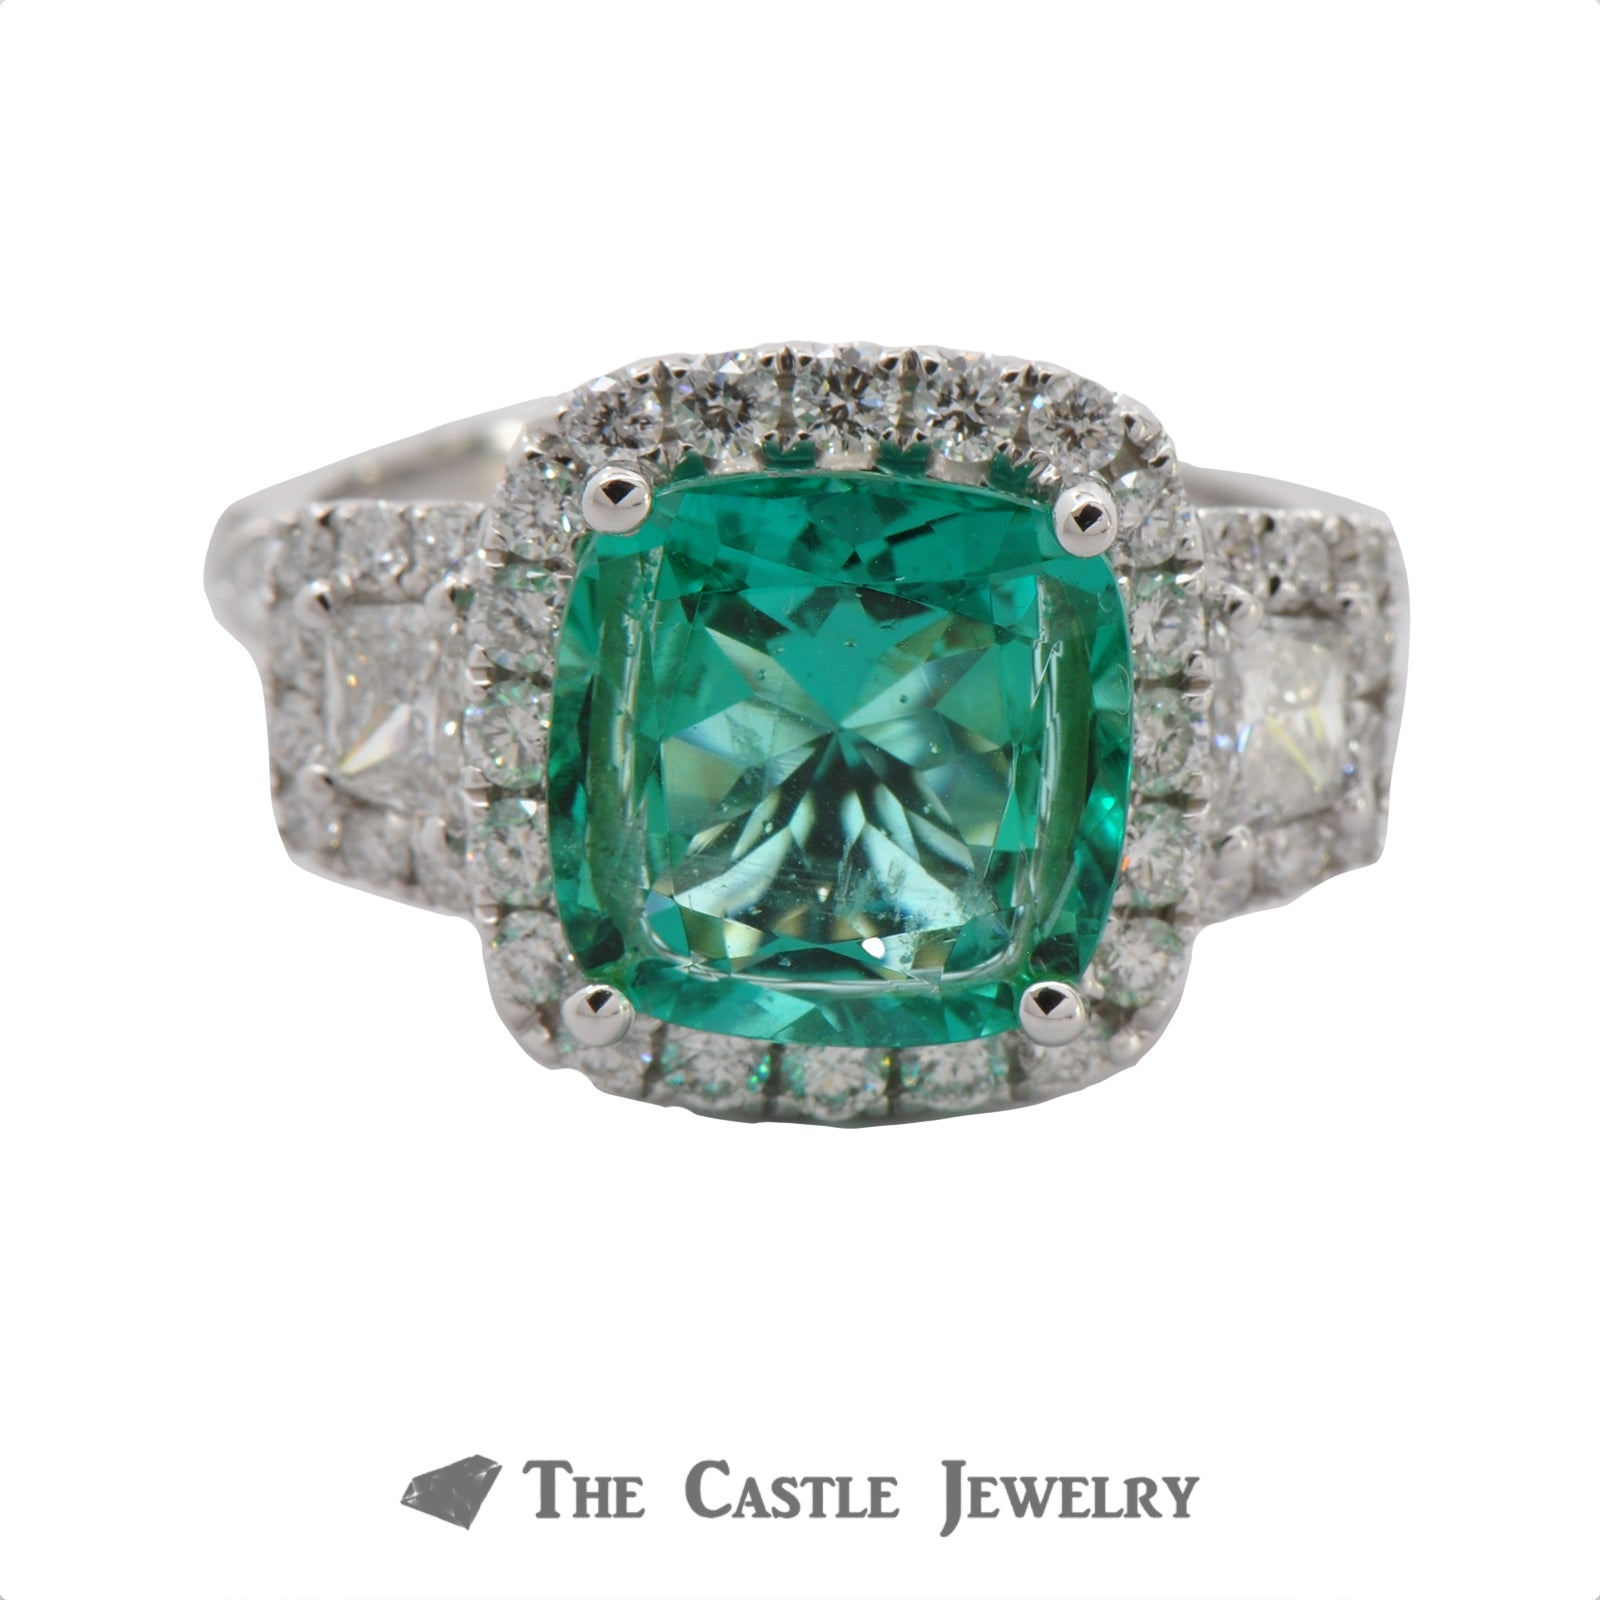 Cushion Cut Emerald Ring in a 18K White Gold Diamond Mounting